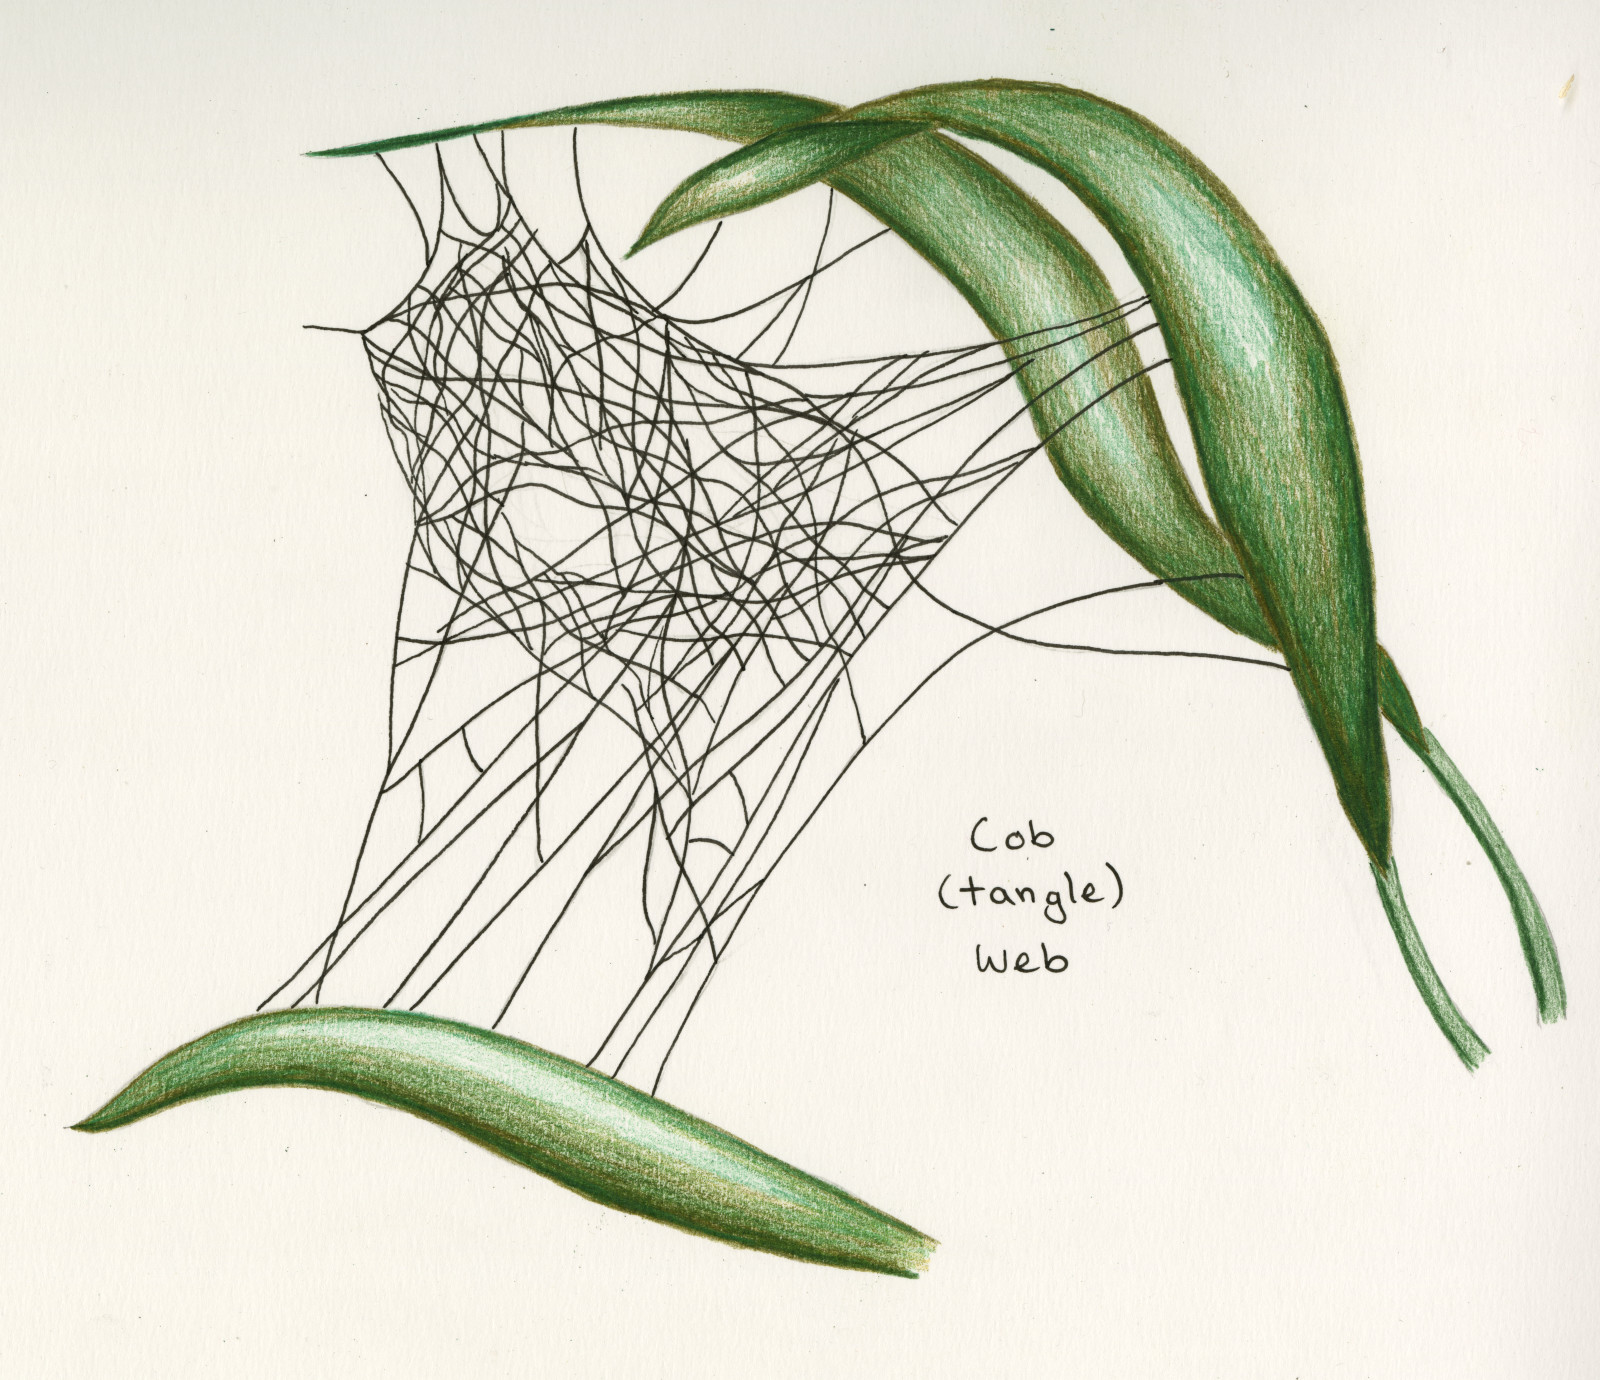 Spider Webs Come As Many Different Types Bay Nature